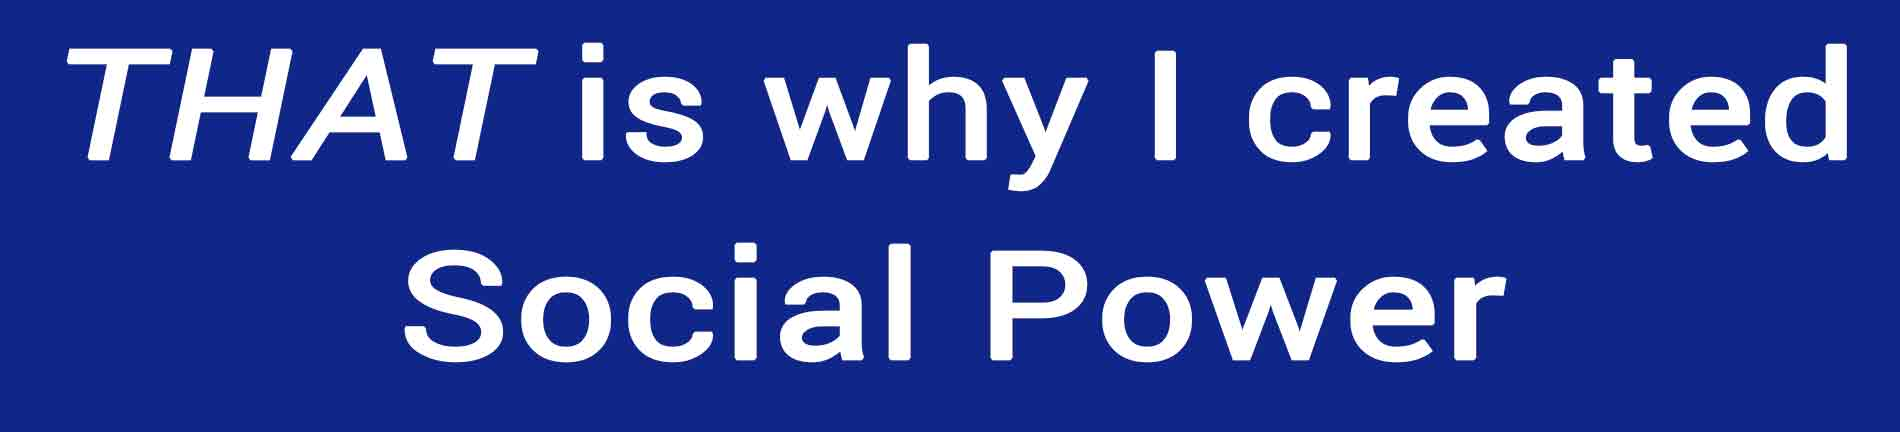 social power WHY